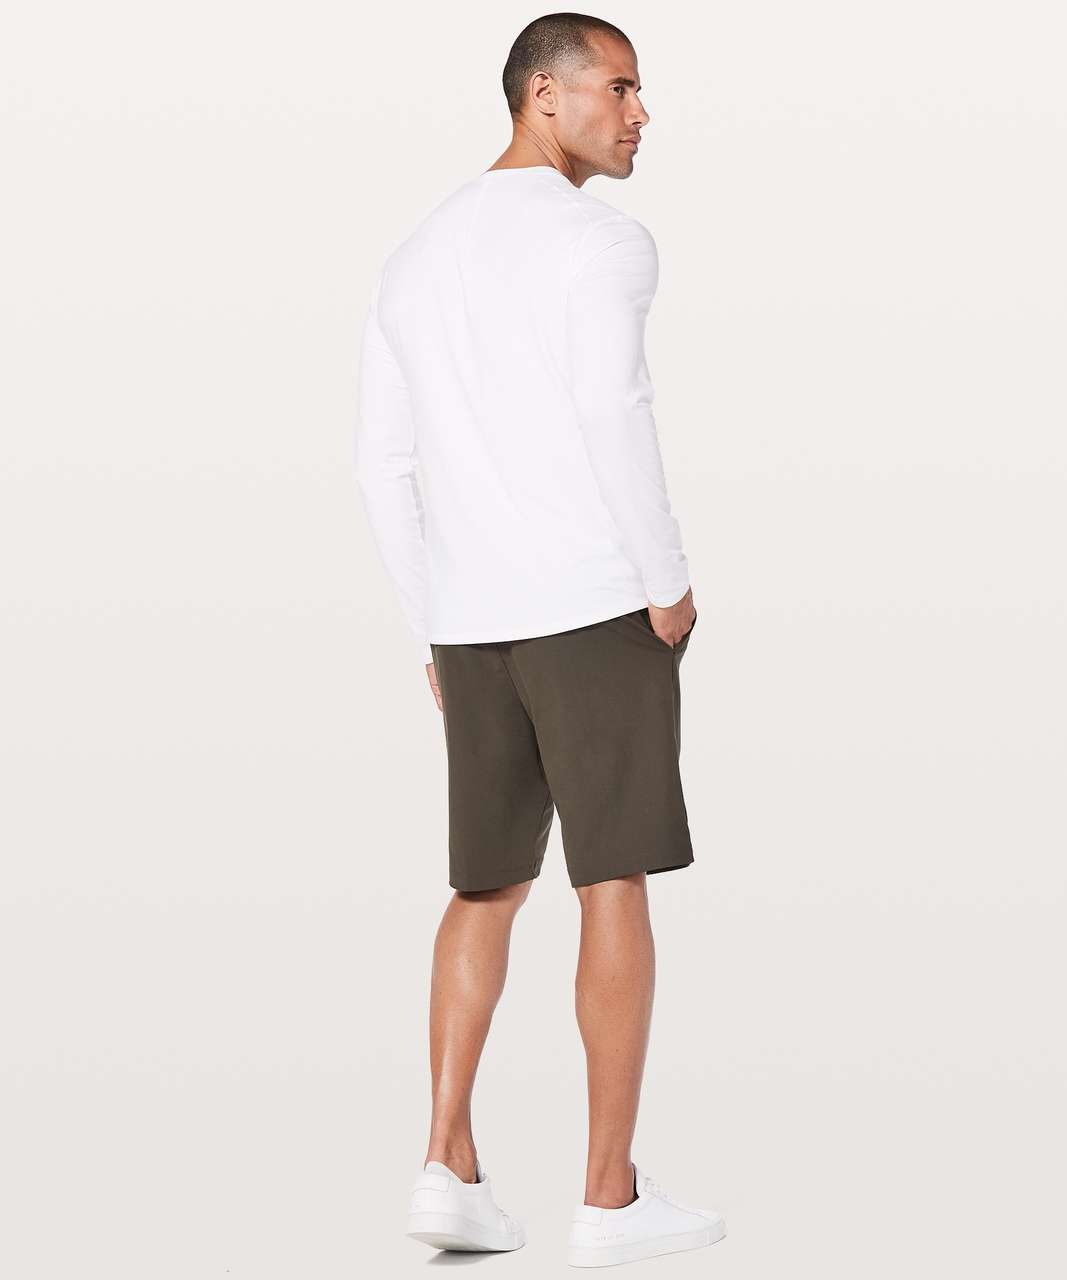 Lululemon 5 Year Basic Long Sleeve Henley - White